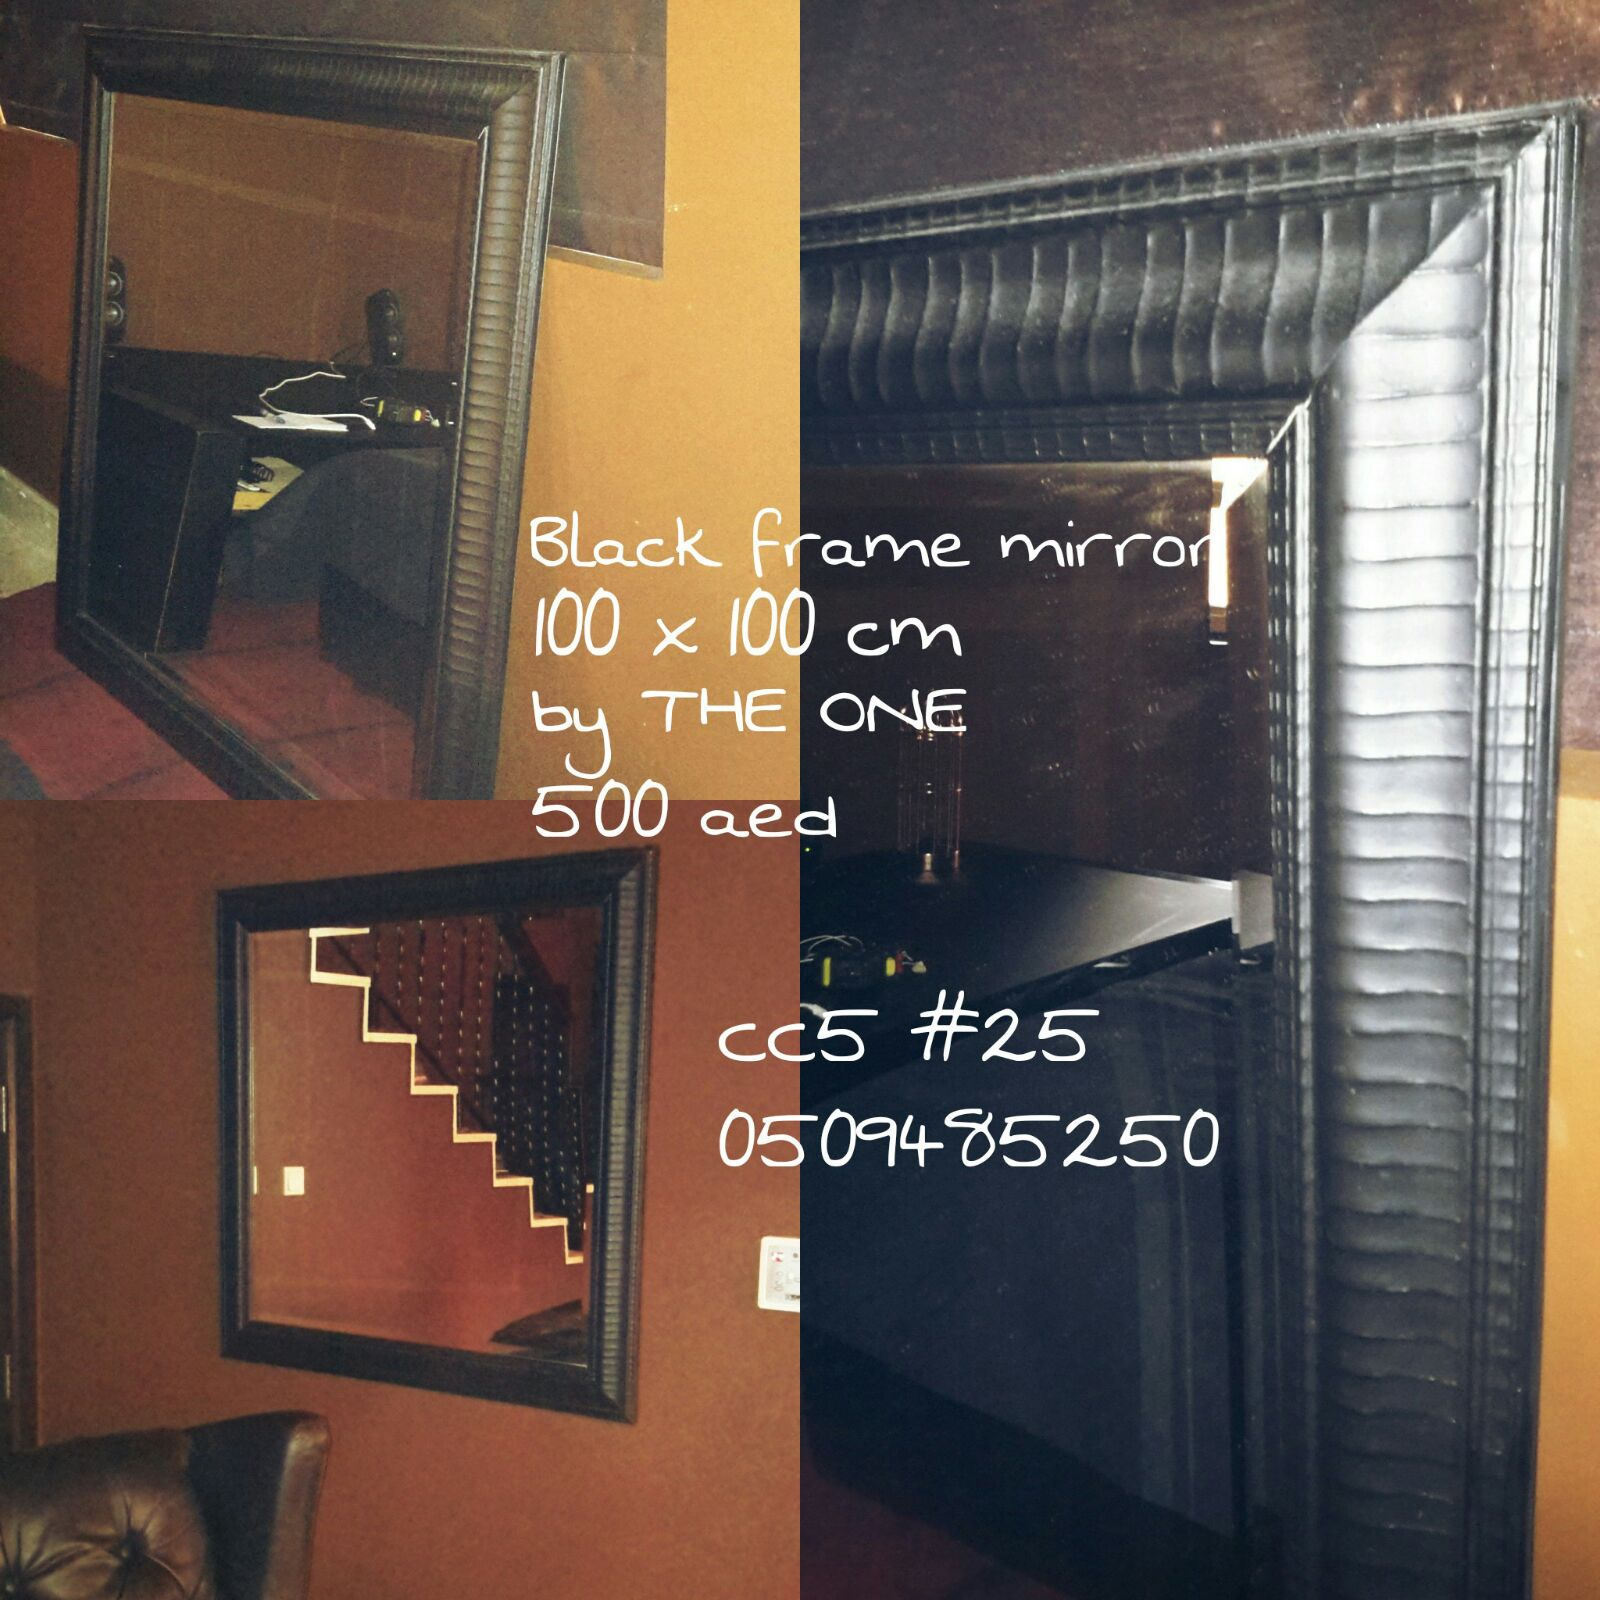 Room Extention Mirror from THE ONE